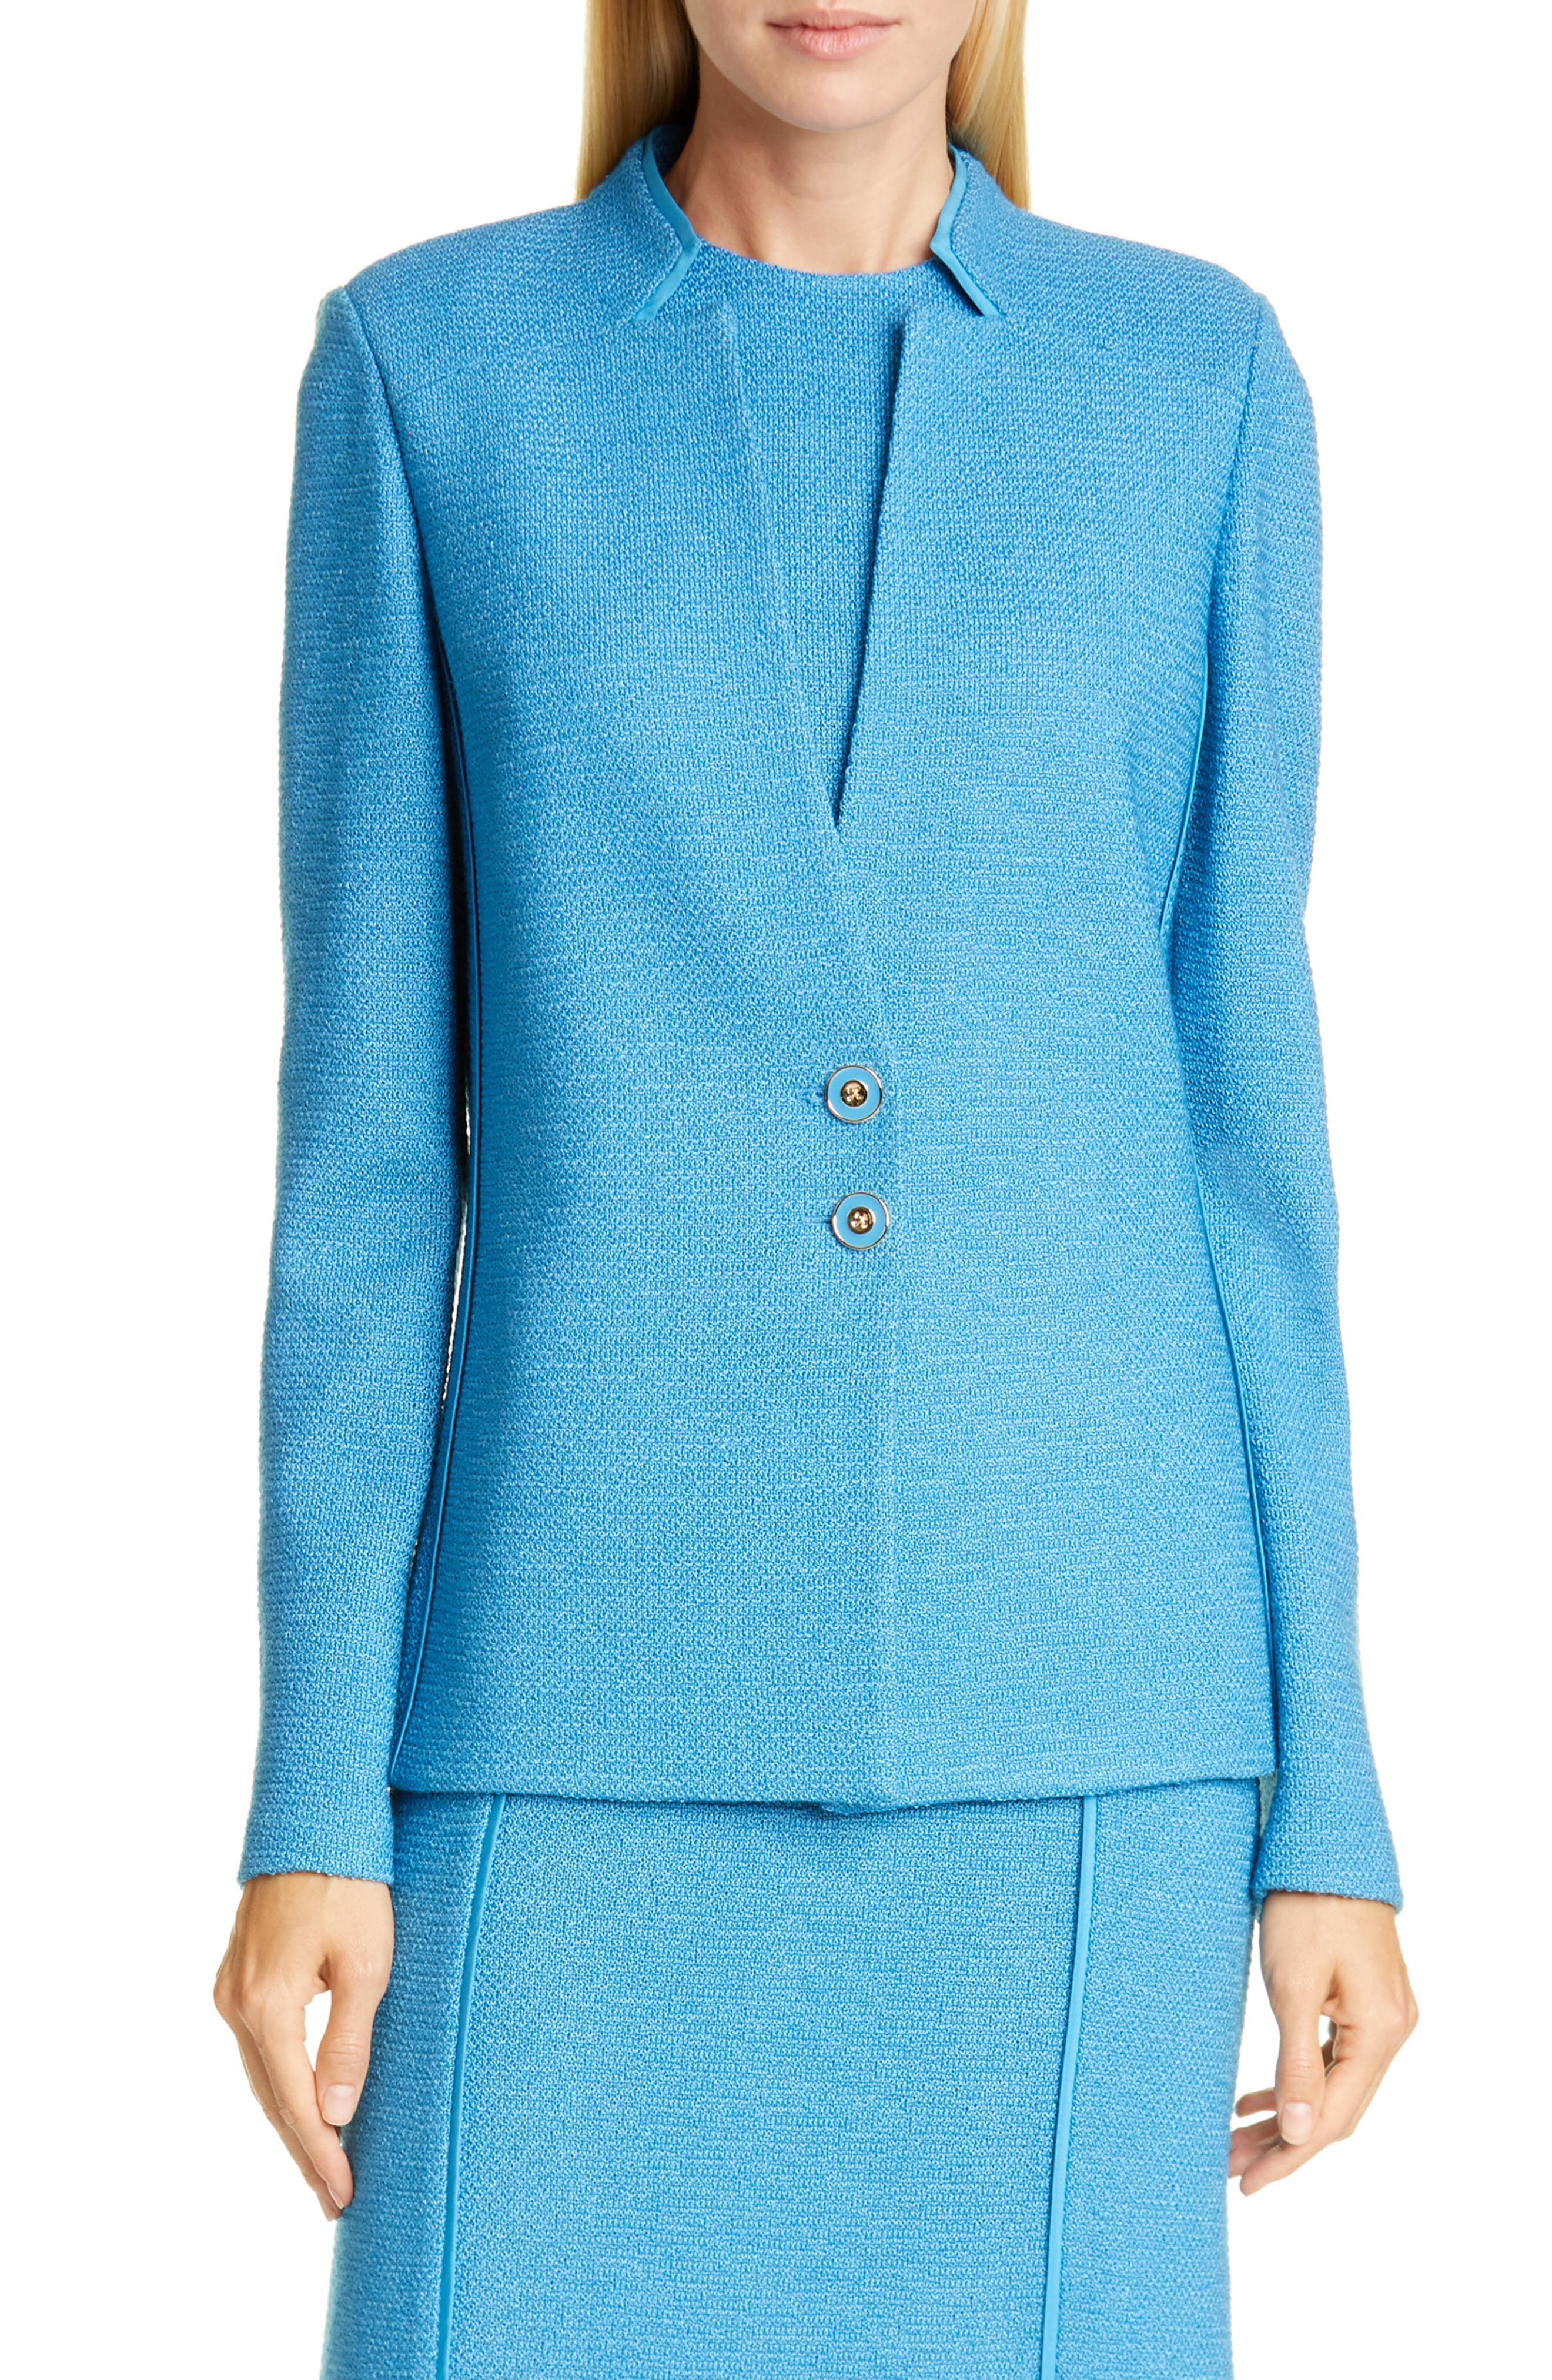 Image of St. John Collection Pebbled Textured Knit Inverted Wool Blend Jacket